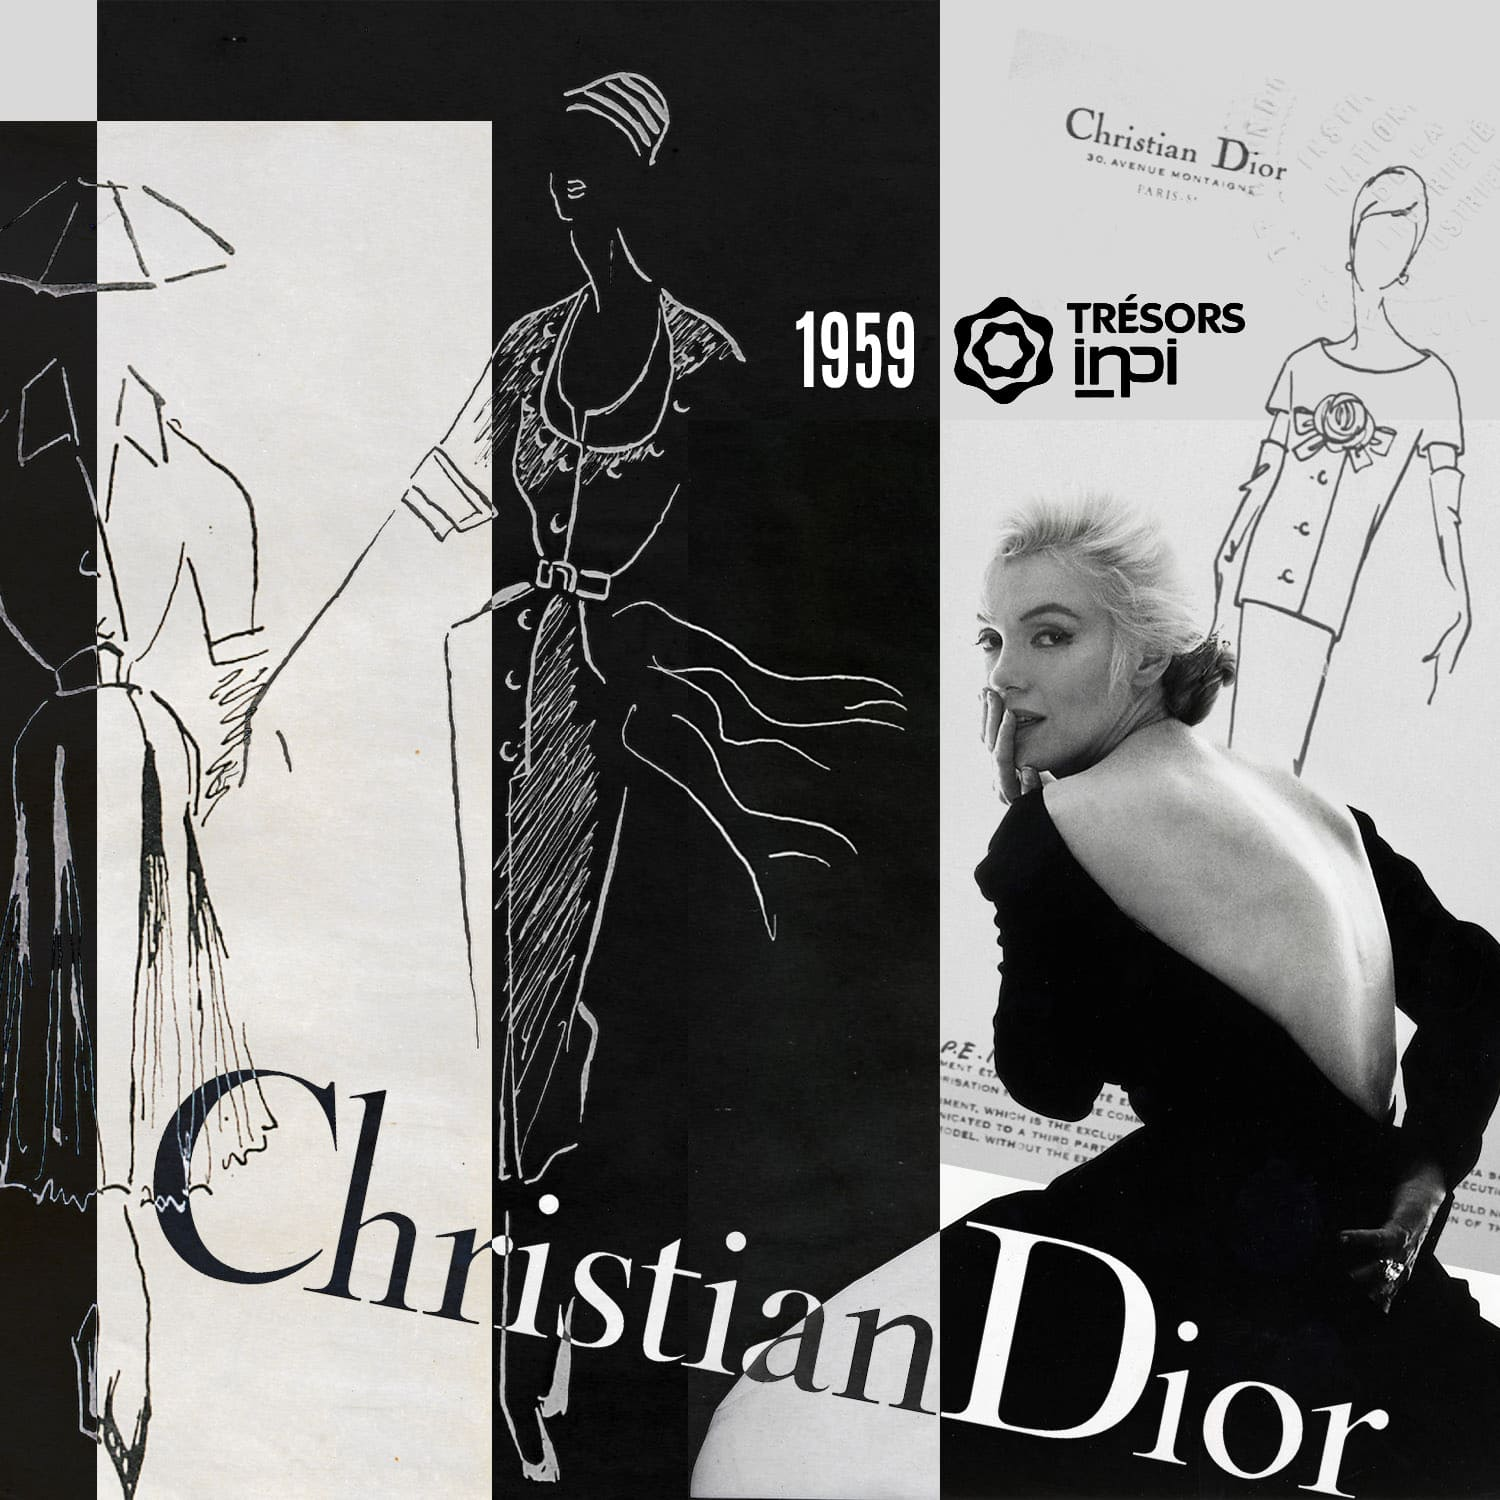 Christian Dior 1959 skirt dress inventions - INPI archives